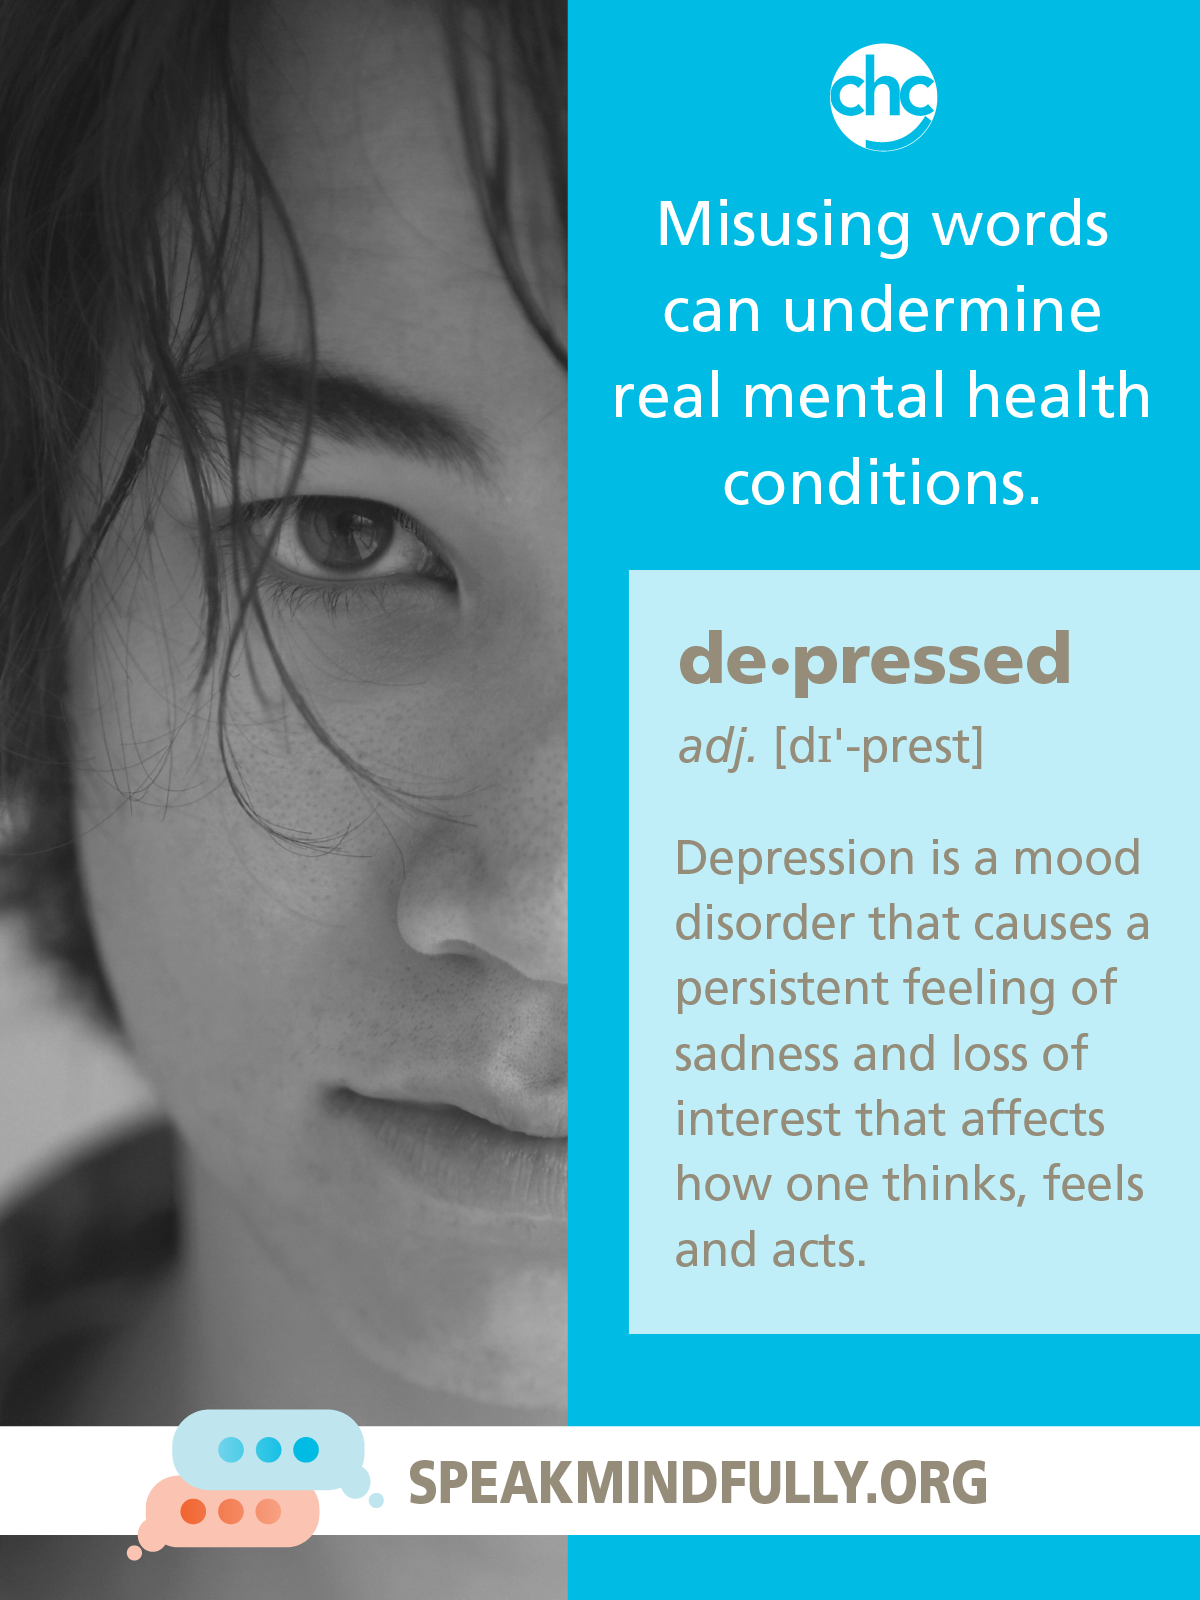 Speak Mindfully poster about Depression